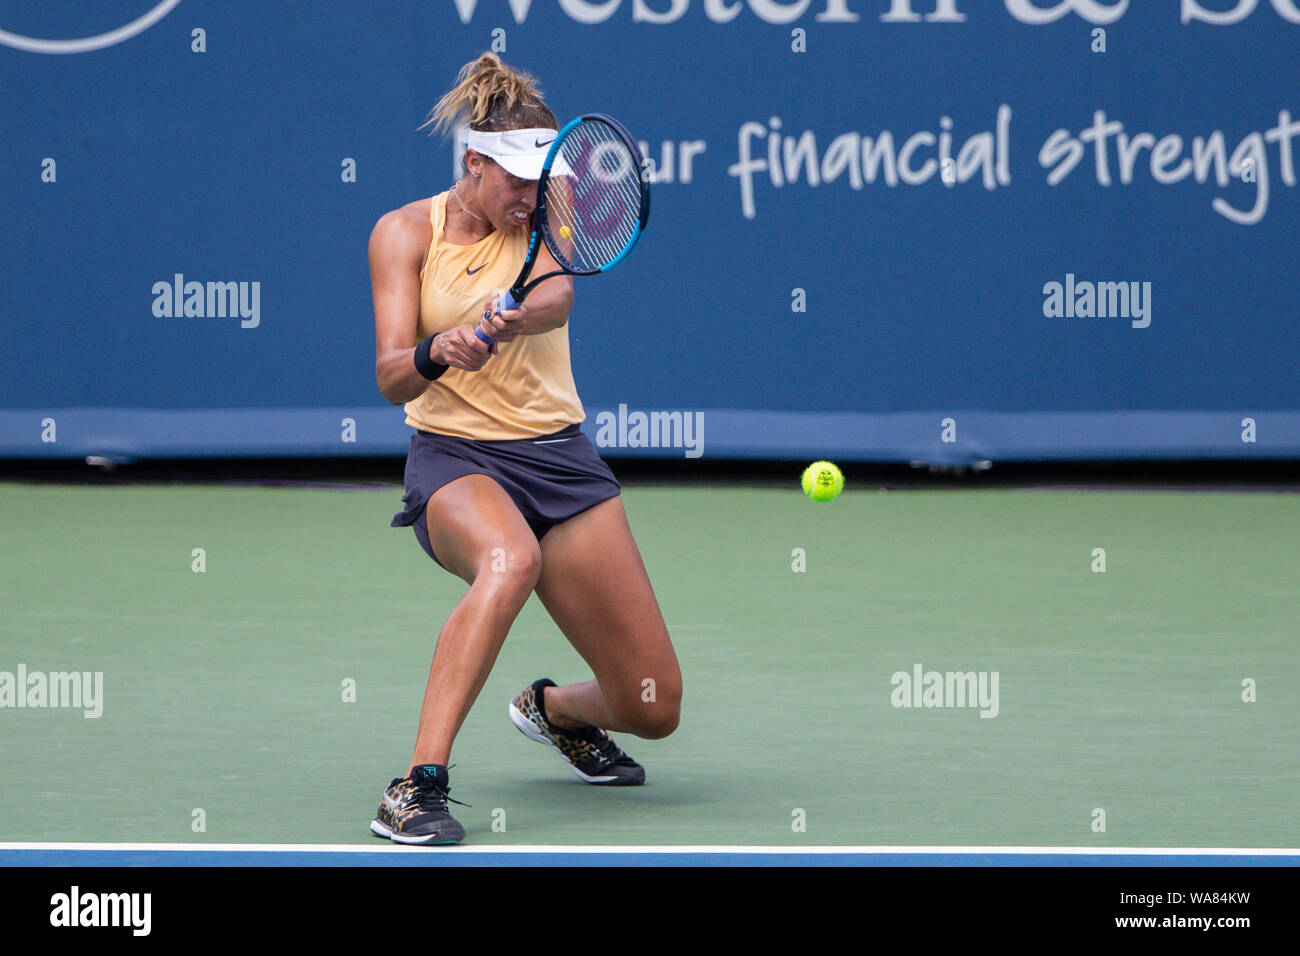 August 18, 2019, Mason, Ohio, USA: Madison Keys (USA) hits a backhand shot during the Women's Final of the Western and Southern Open at the Lindner Family Tennis Center, Mason, Oh. (Credit Image: © Scott Stuart/ZUMA Wire) Stock Photo